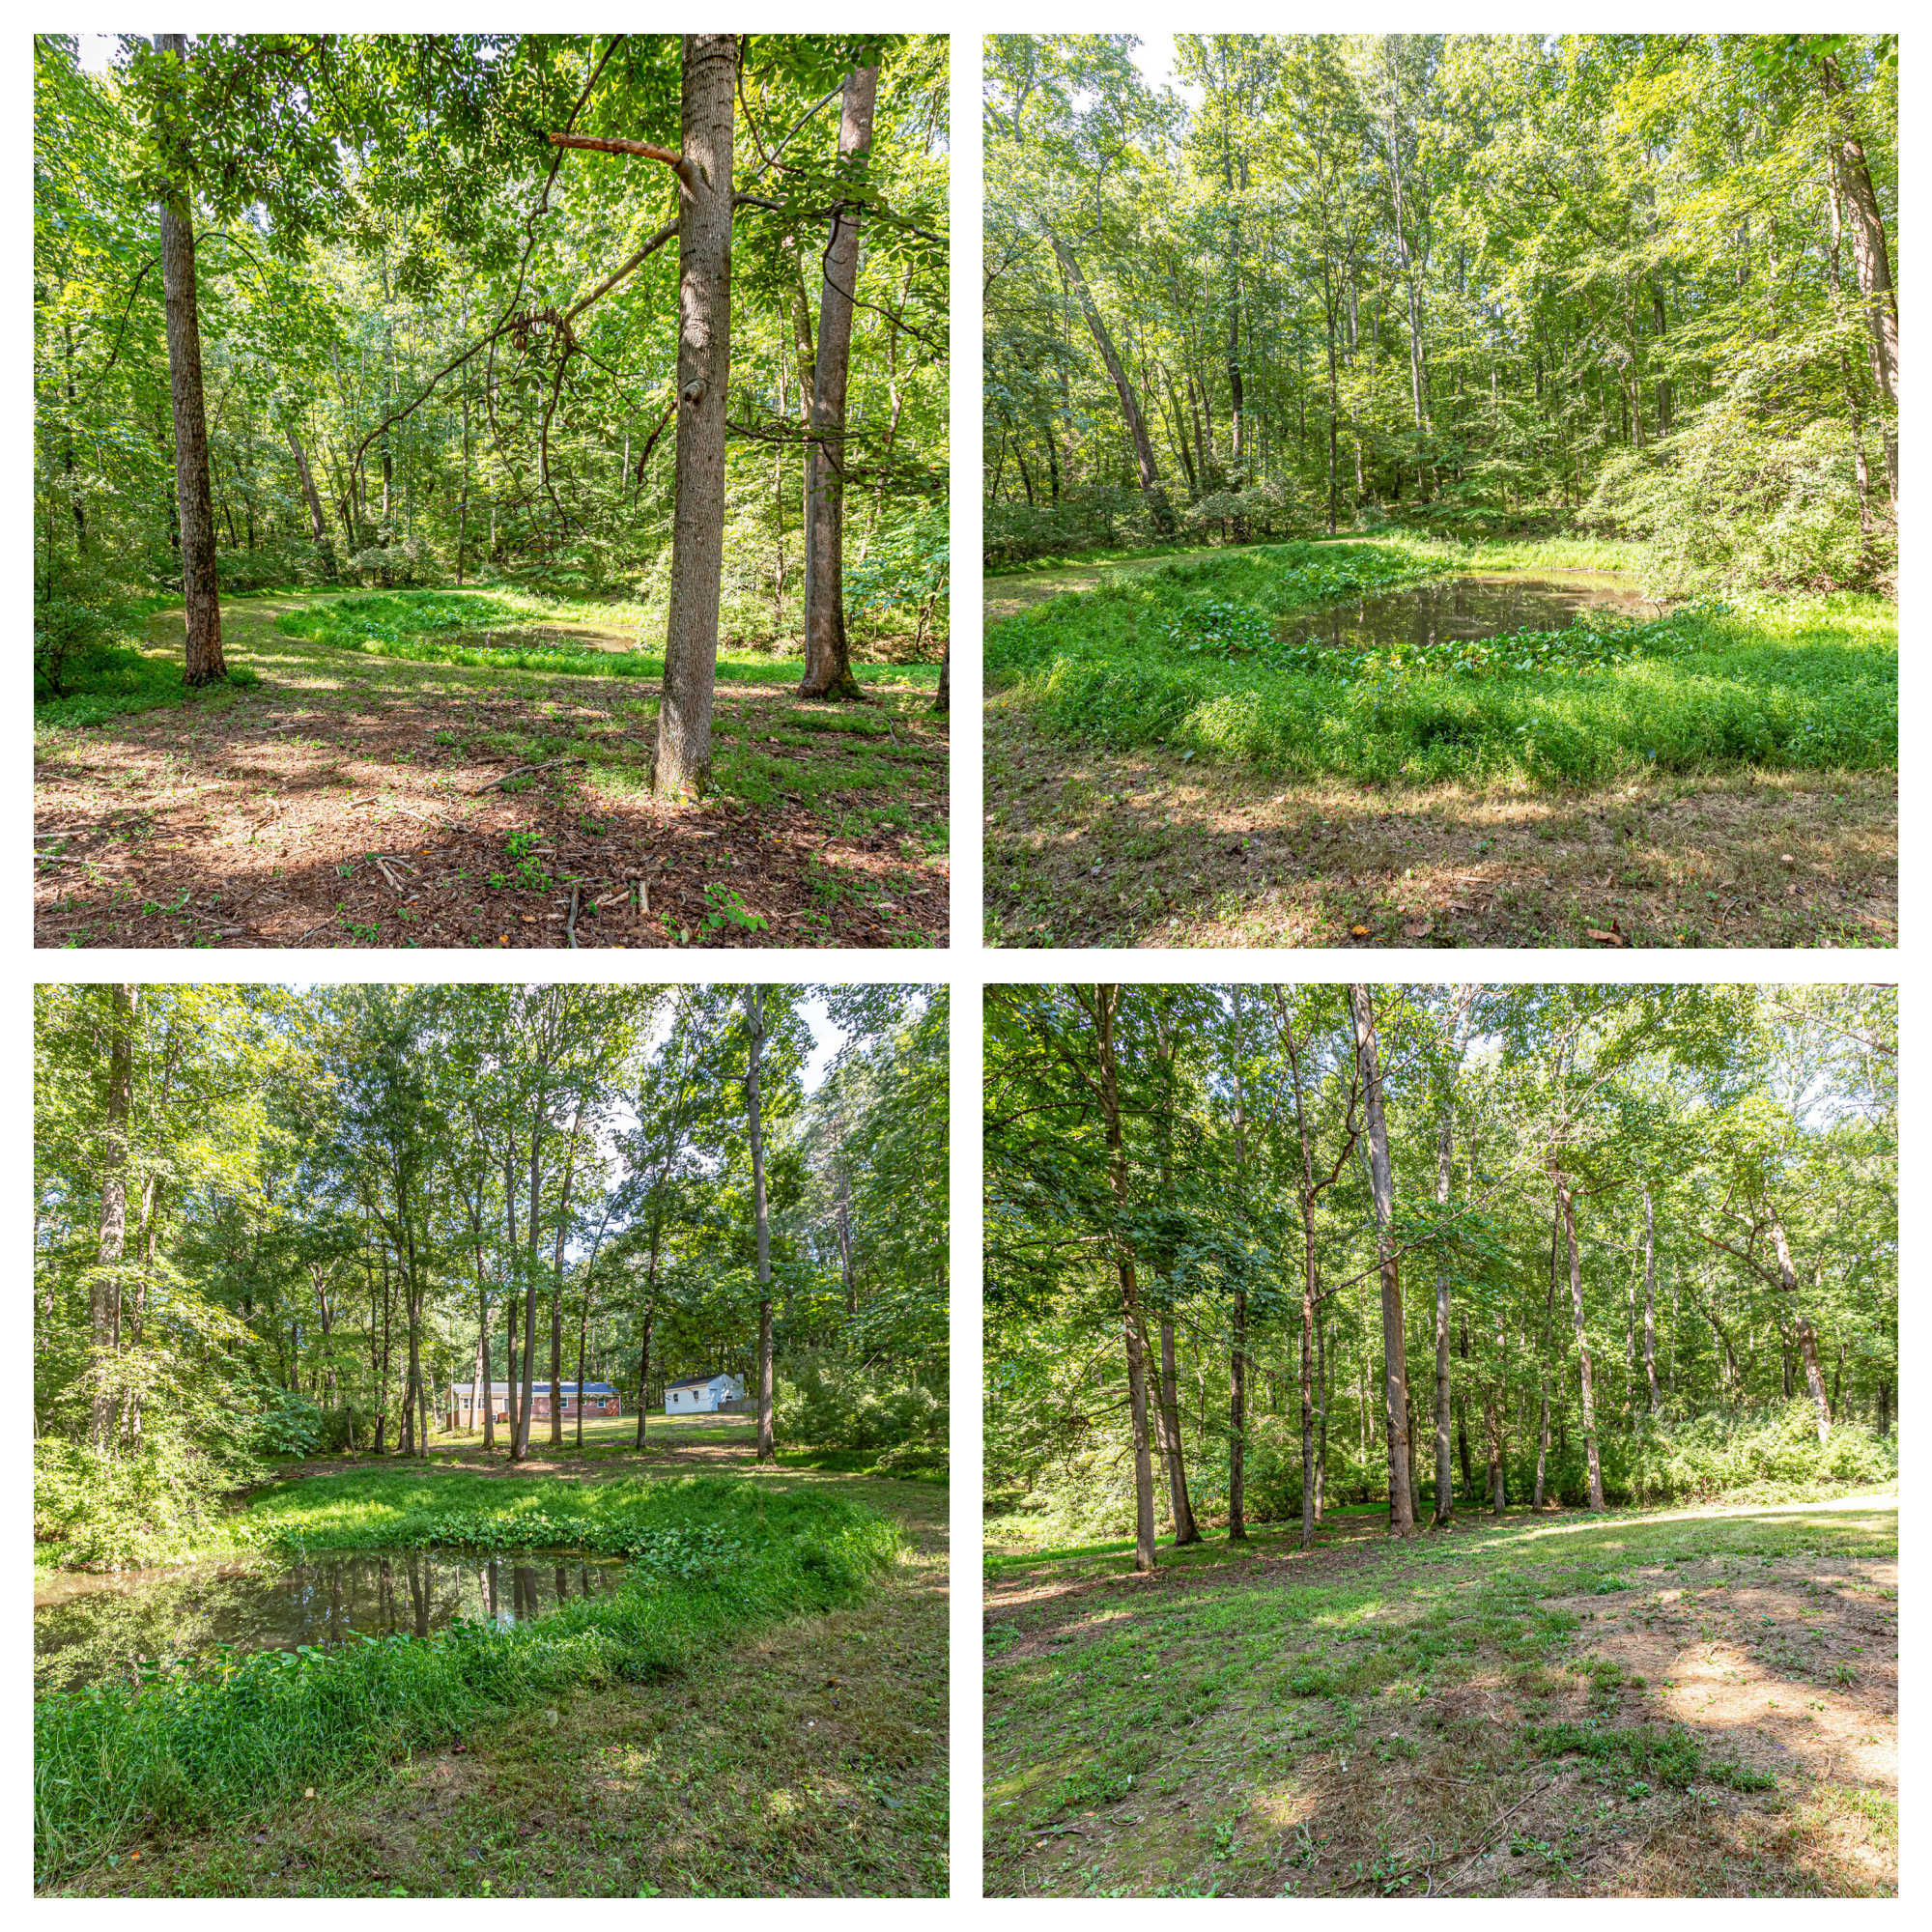 584 Aaron Mountain Rd, Castleton- Yard and Pond